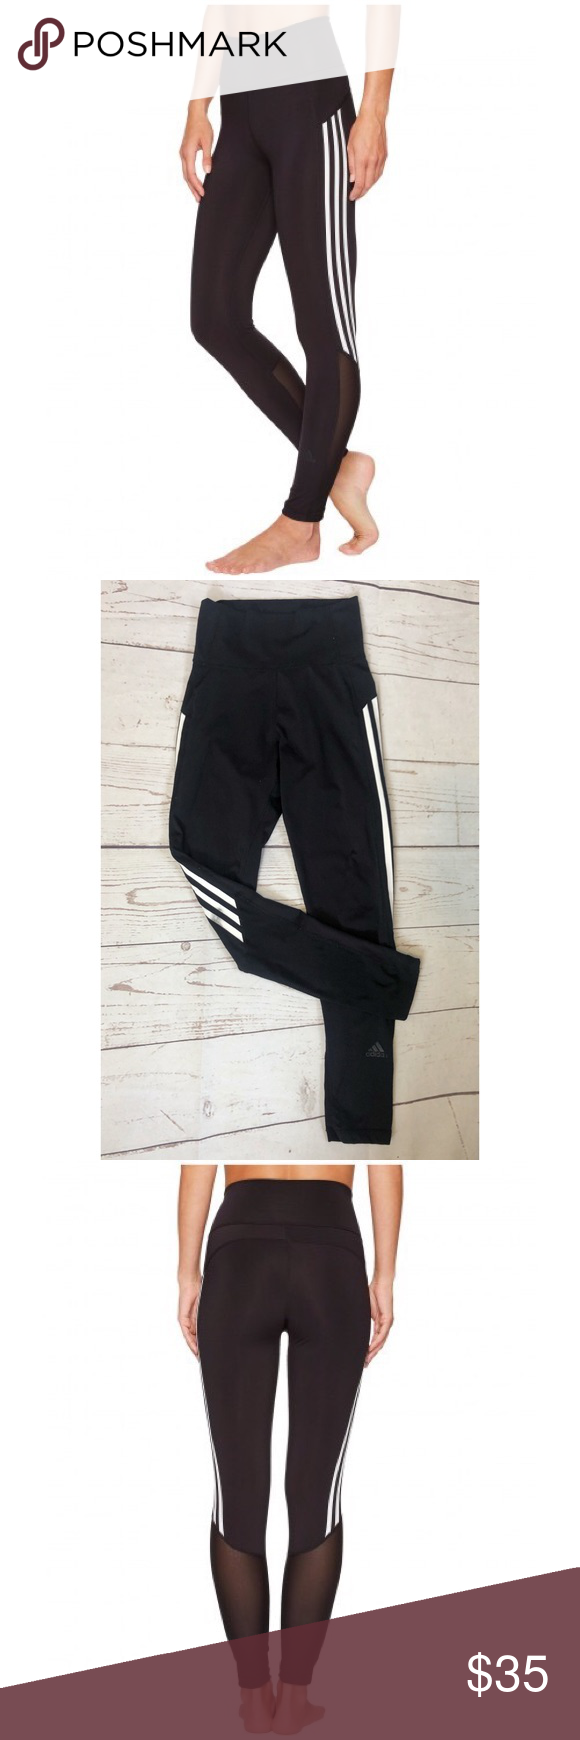 c5ecdbdee01b61 ADIDAS Believe 3 stripe leggings Adidas Believe This 3-Stripes Training  Tights are constructed with